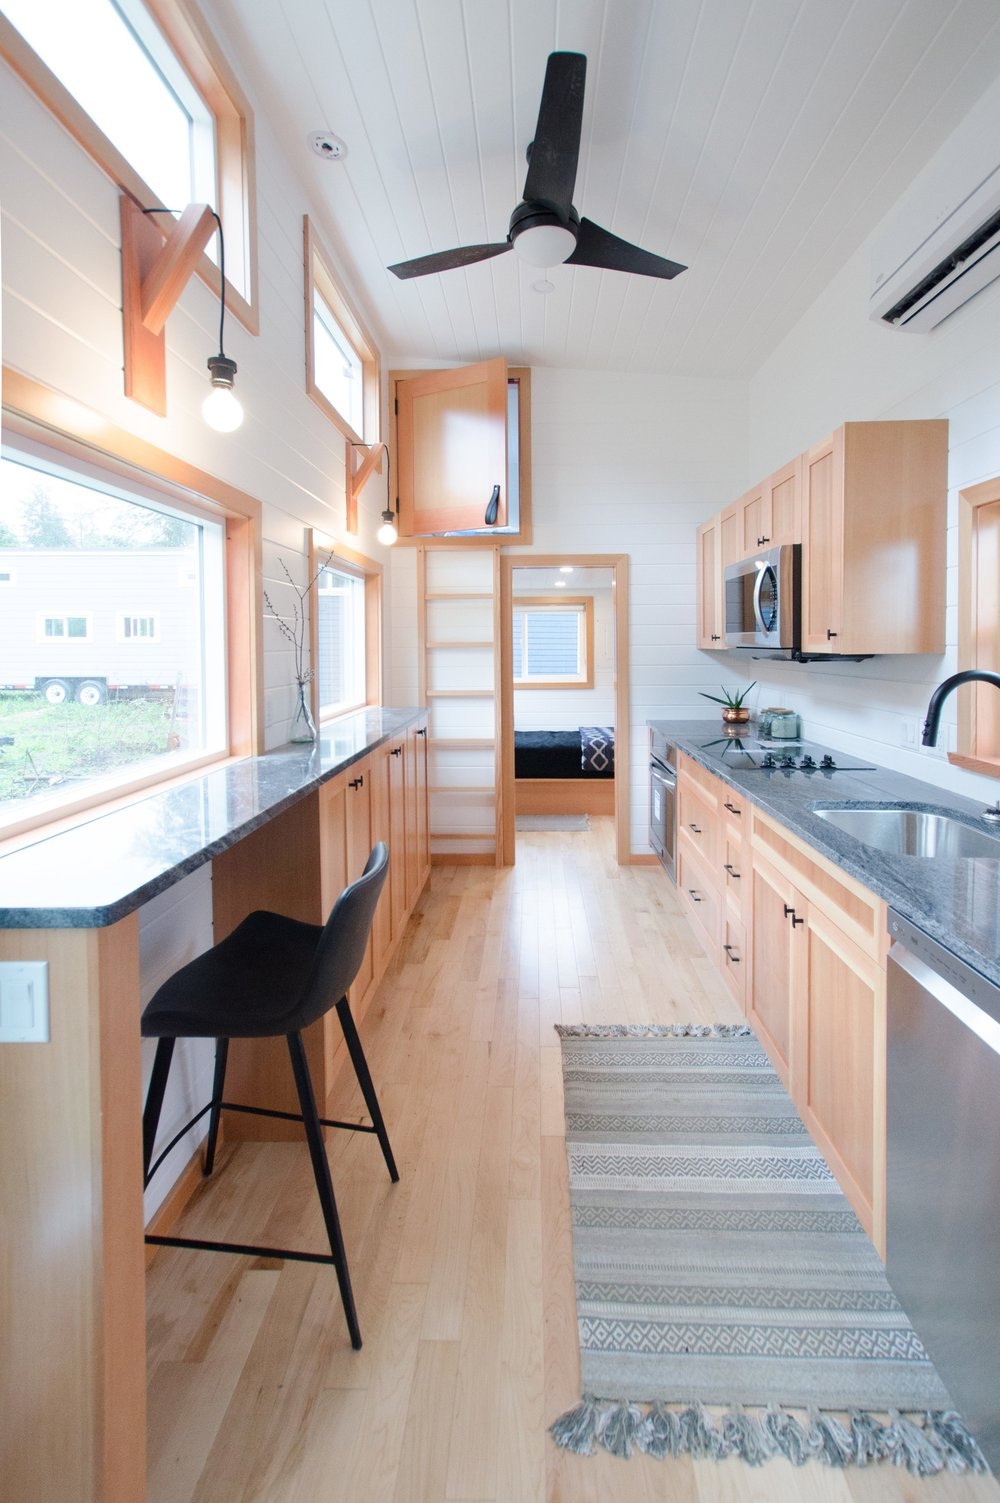 The Albatross 28 Tiny Home With 3 Bedrooms Rewild Homes